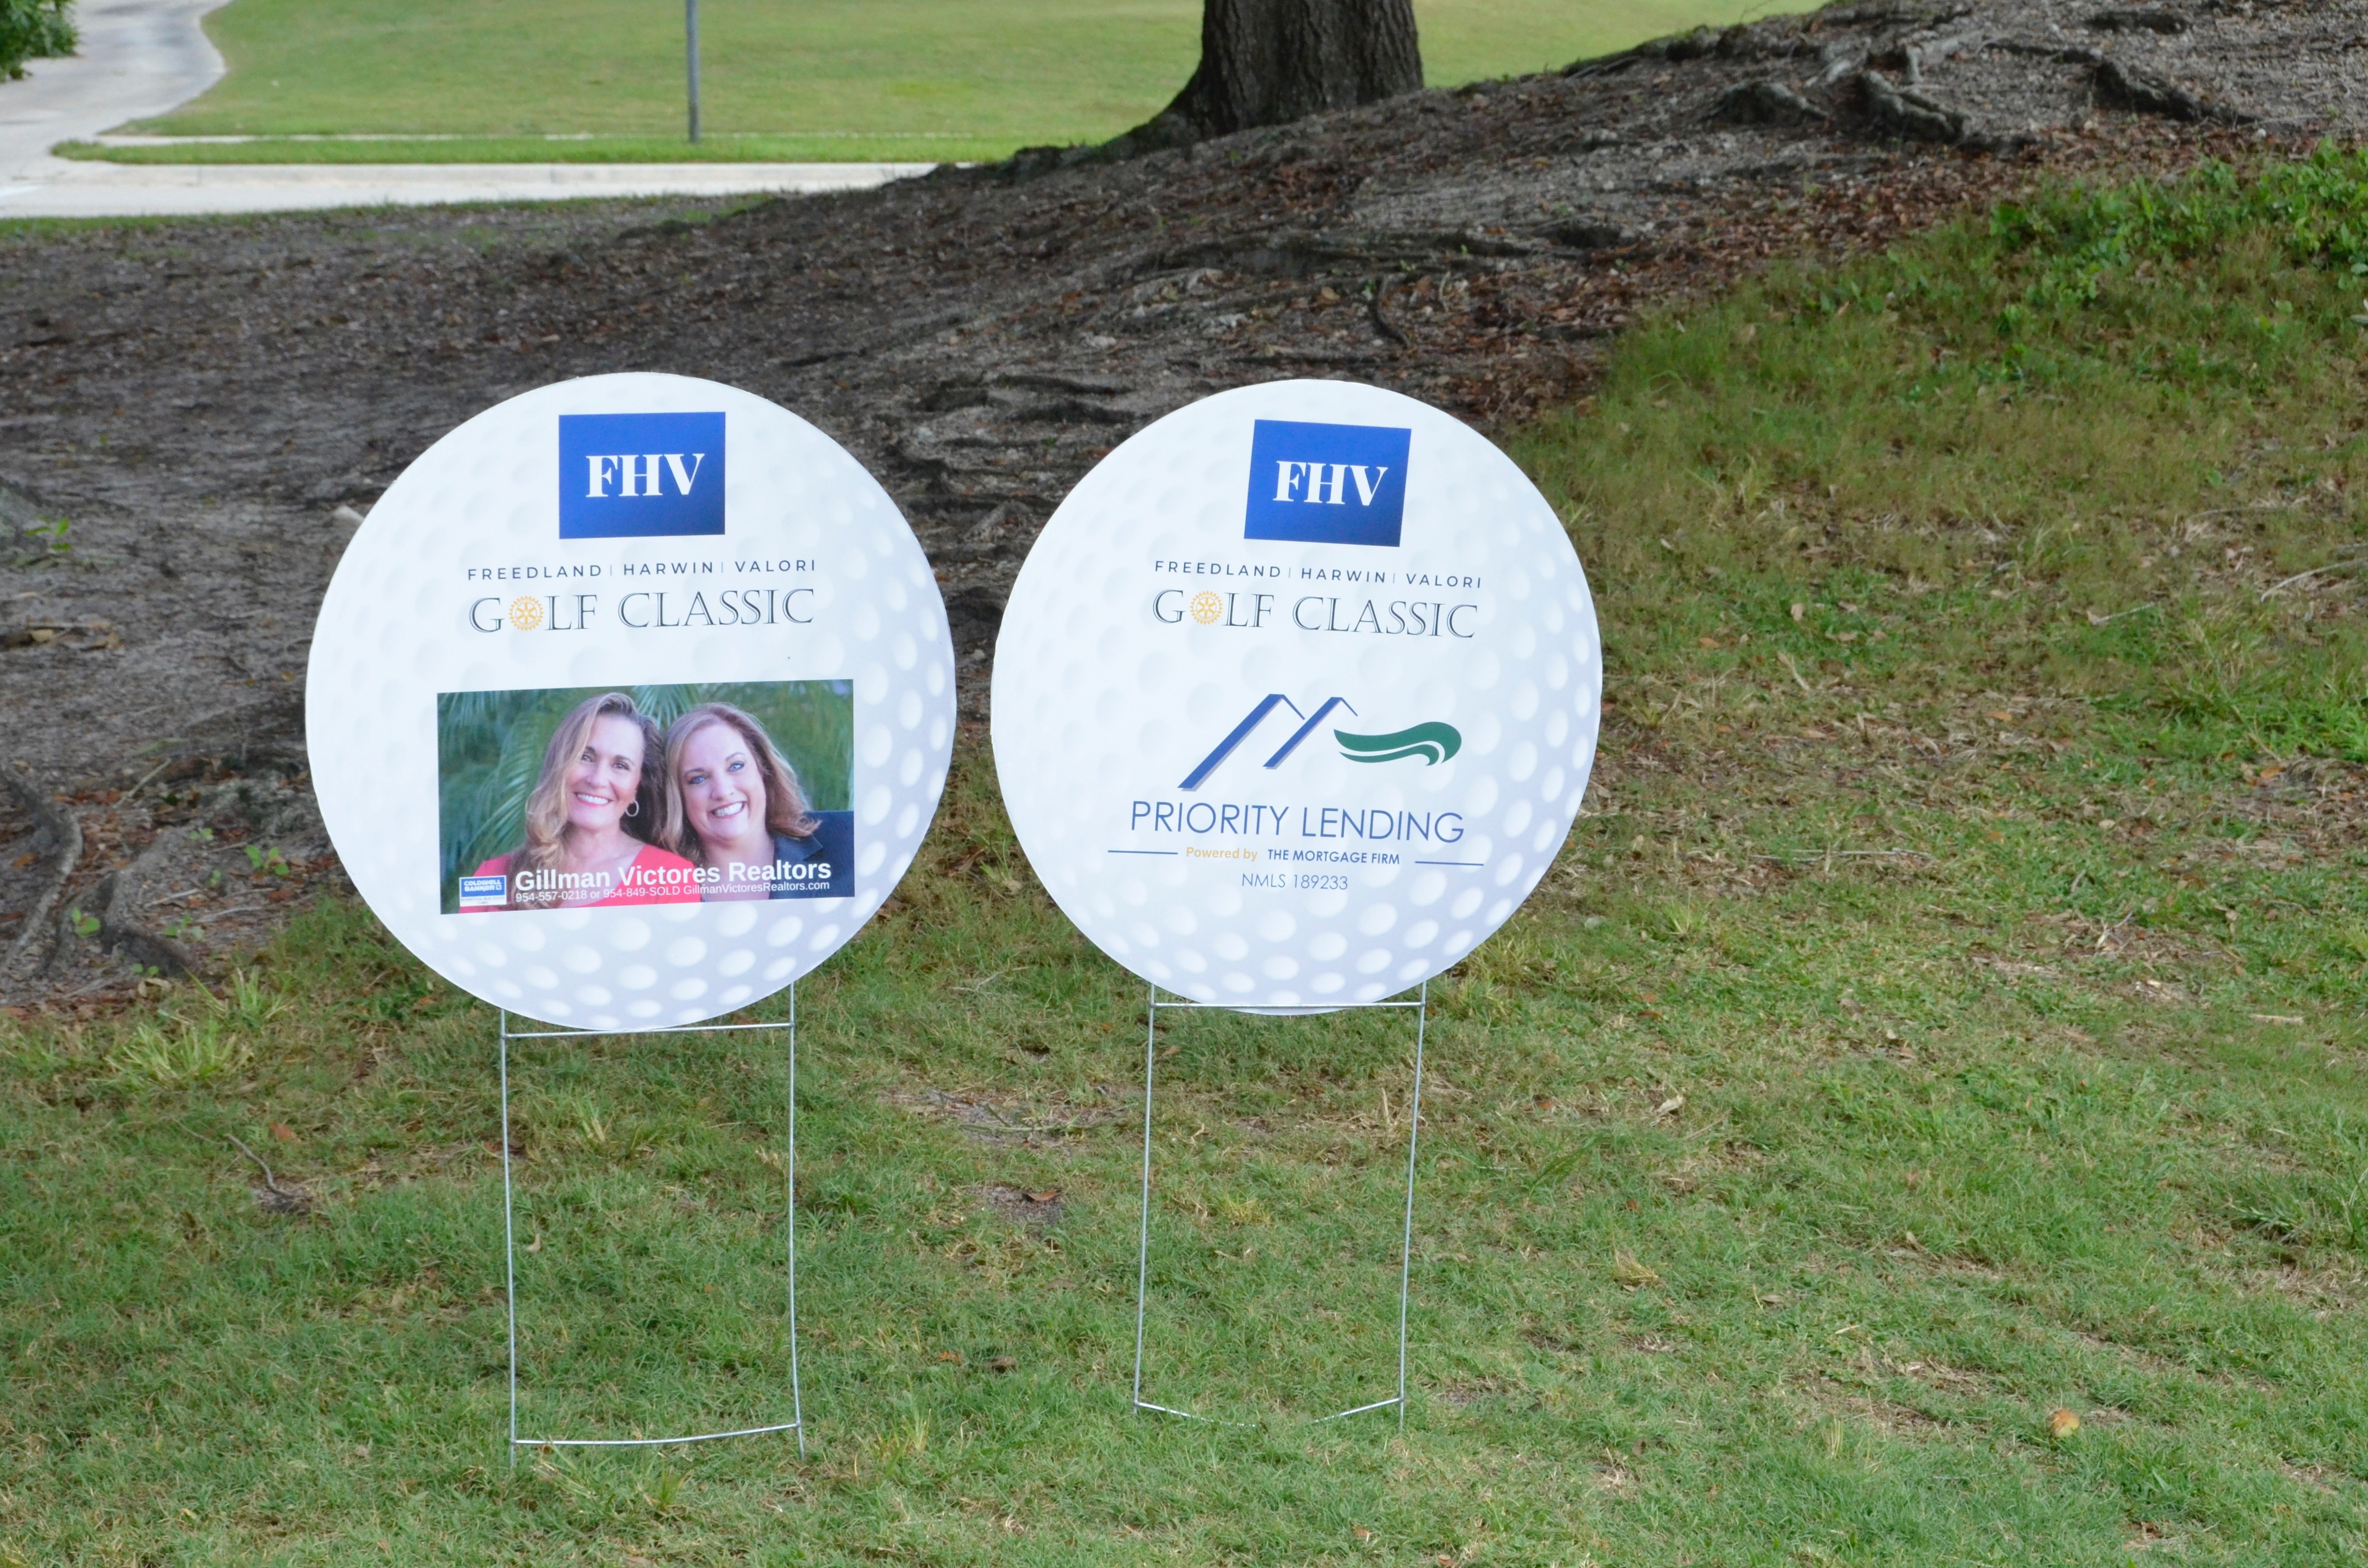 33rd Annual Rotary Golf Classic Sponsored by FHVLEGAL.COM gallery image #45